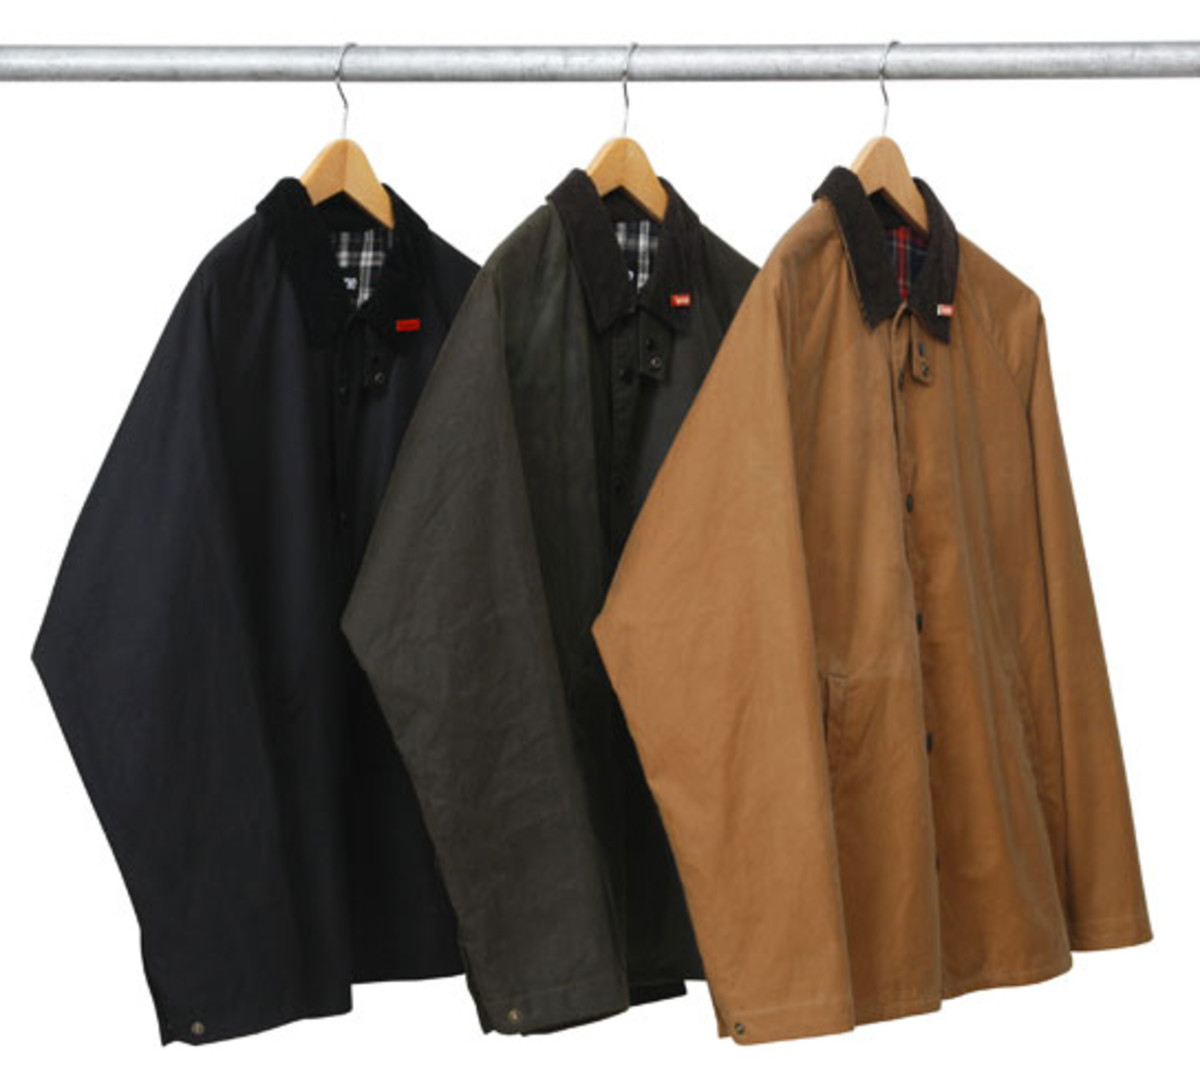 Supreme - Fall/Winter 2009 Collection - Timberline Jacket